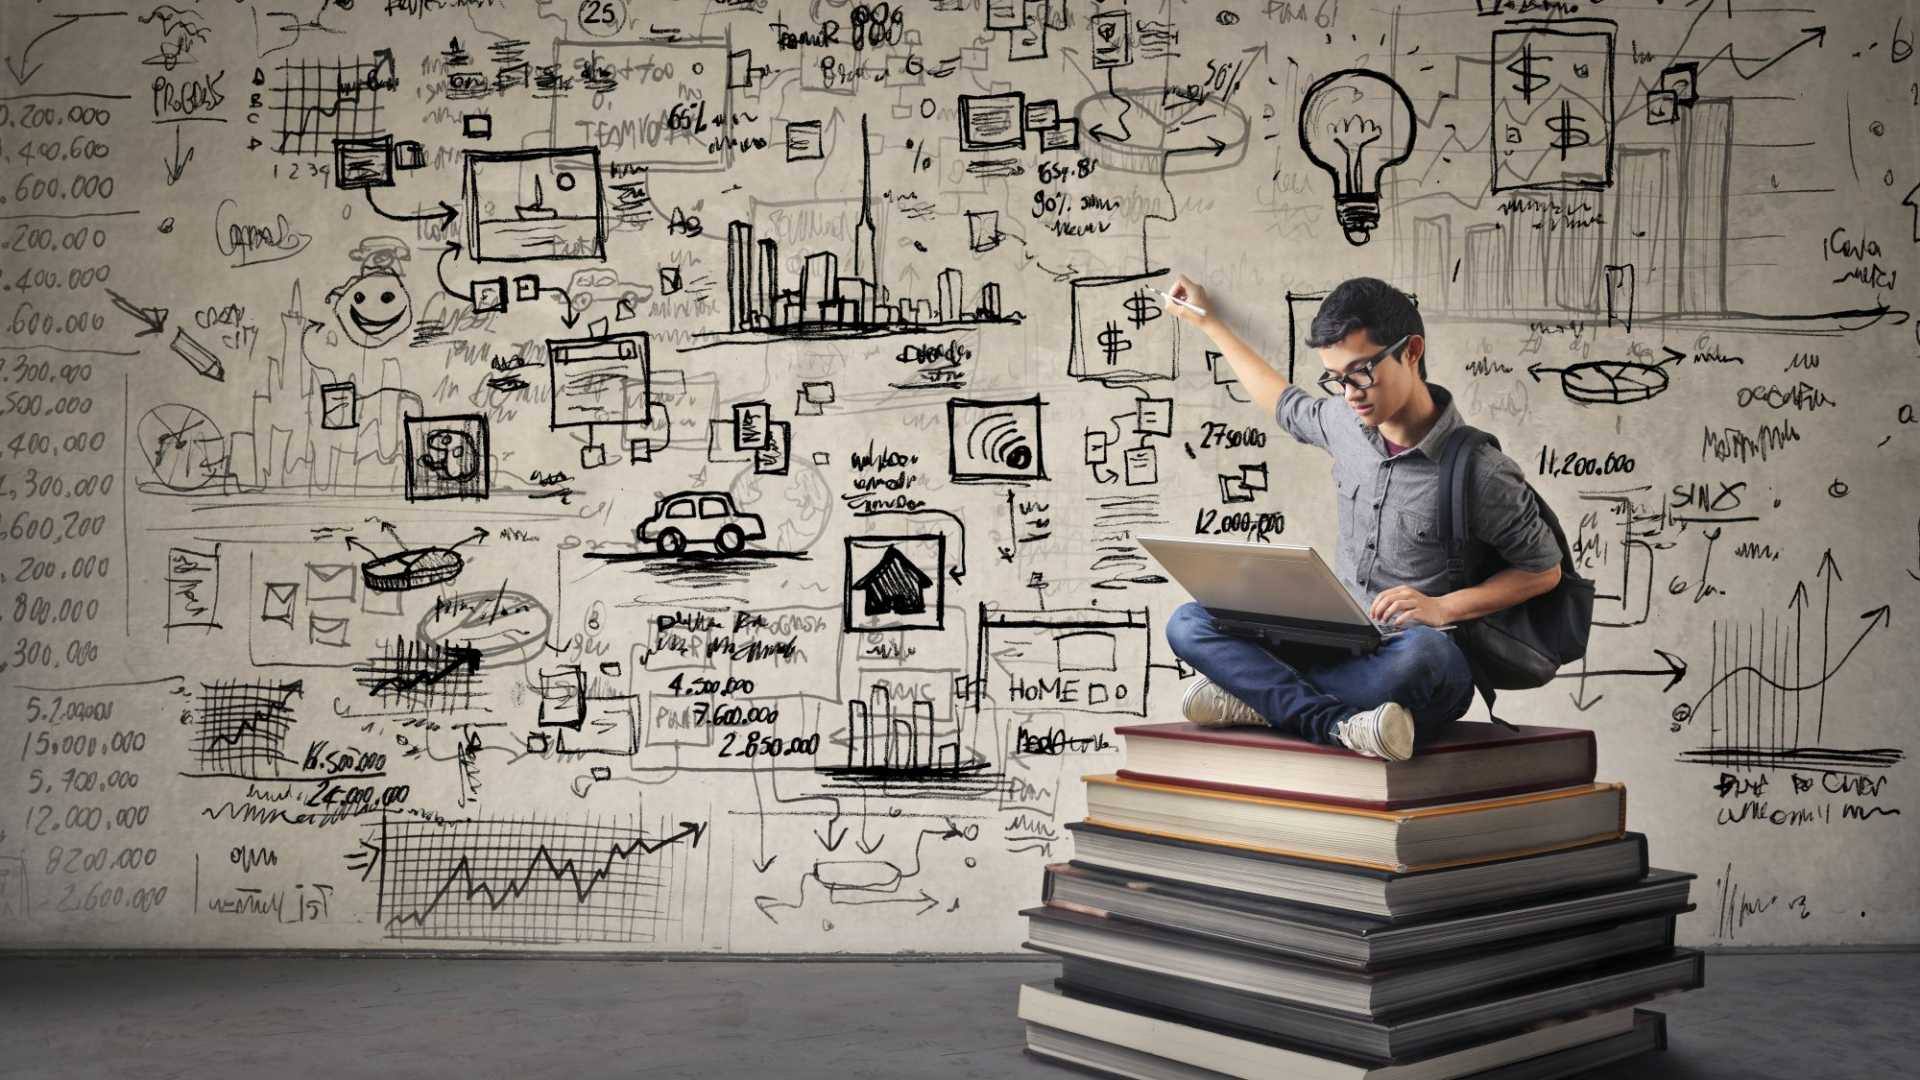 5 Strategies That Will Make You a Better Learner